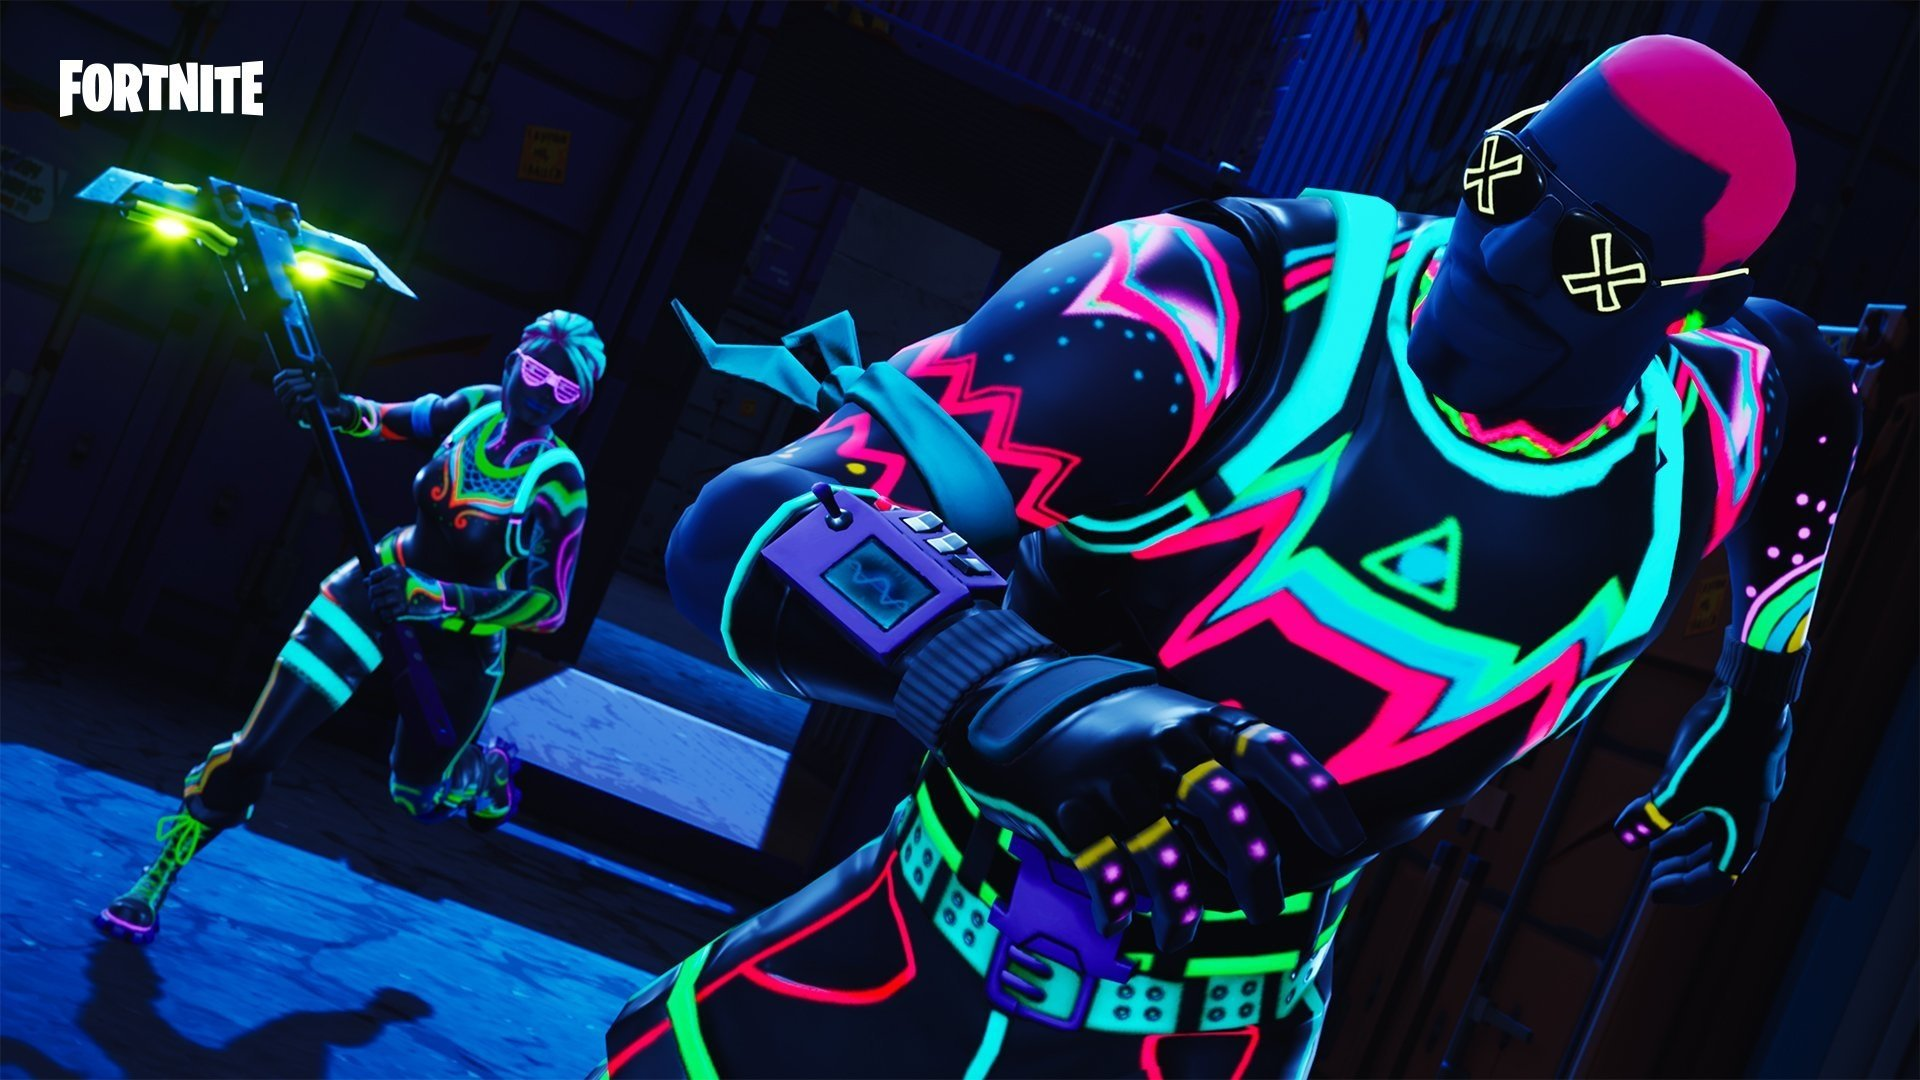 Fortnite New Skin Liteshow Outfit Hd Wallpaper Background Image